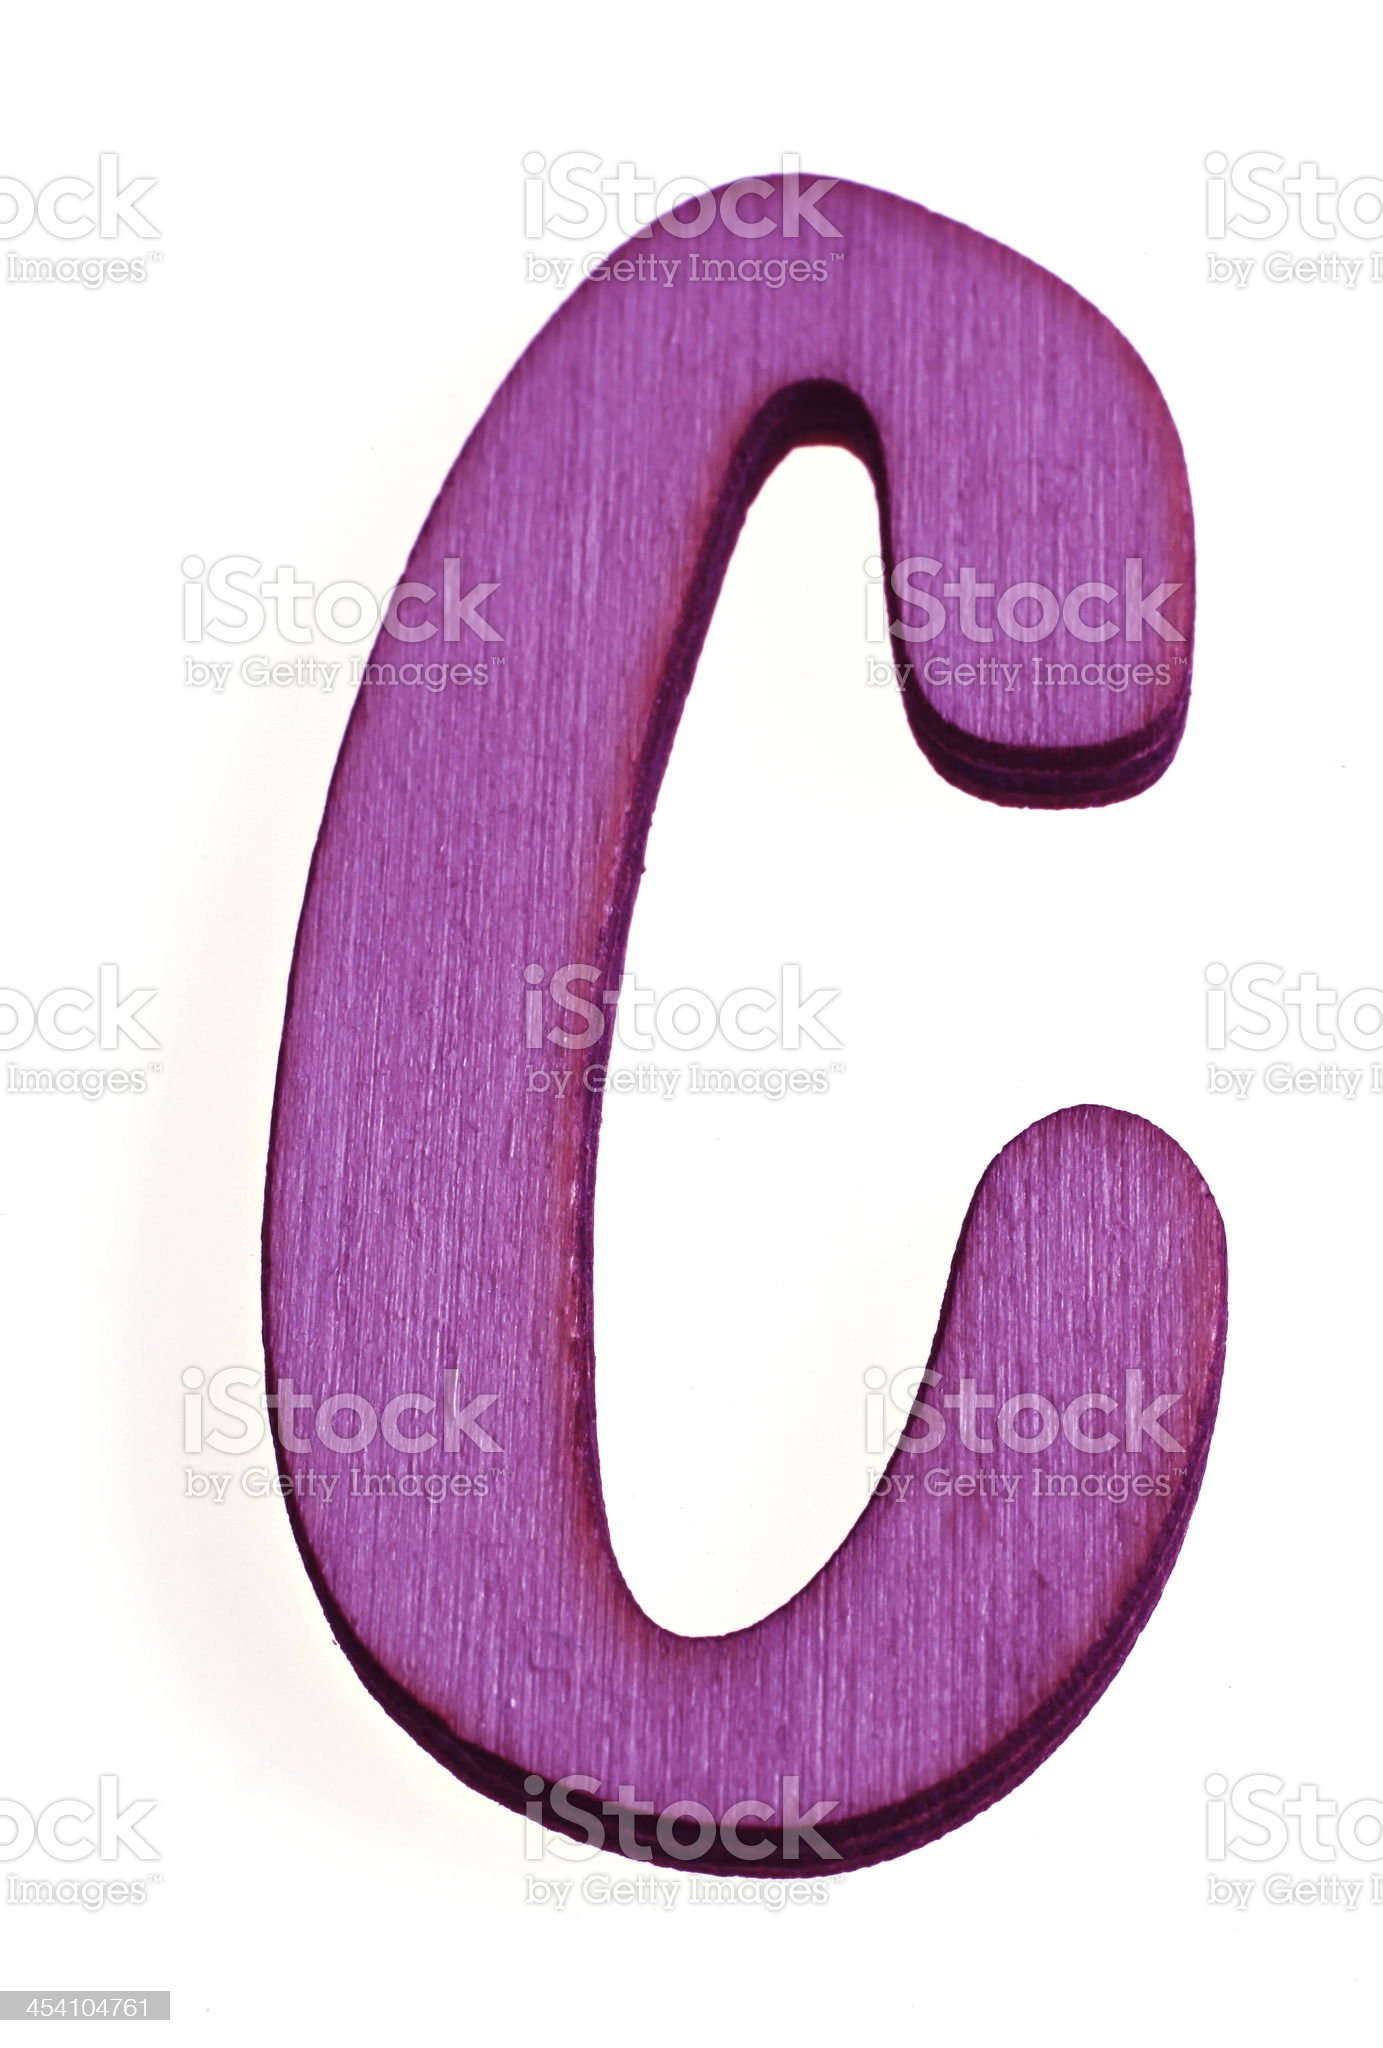 Wooden Letter C royalty-free stock photo